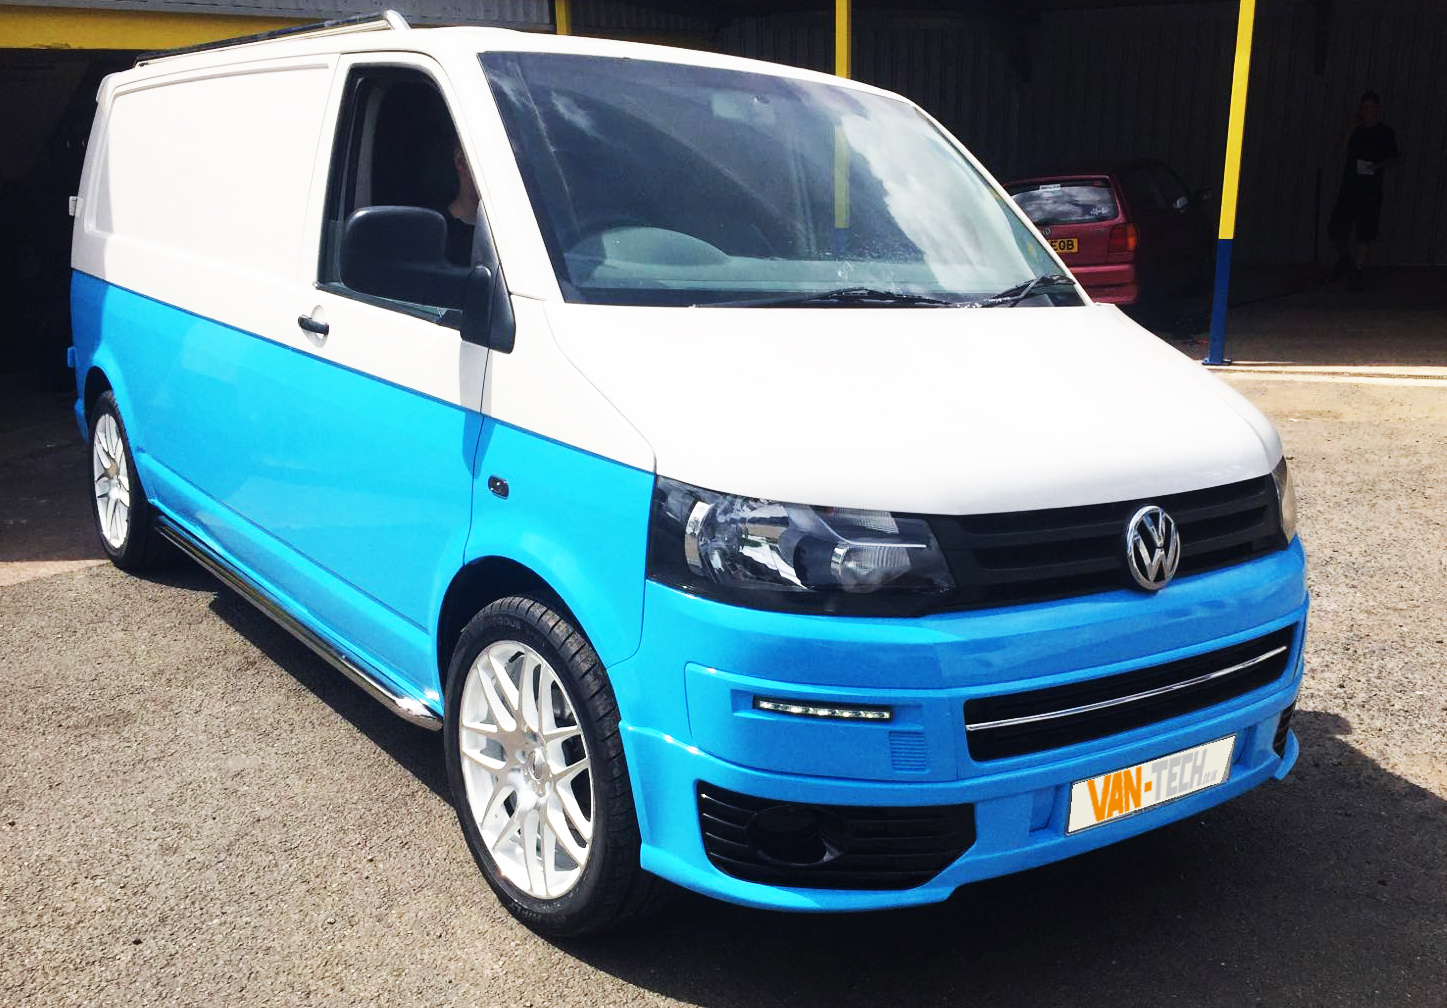 vw transporter t5 sportline full conversion styling pack van tech. Black Bedroom Furniture Sets. Home Design Ideas